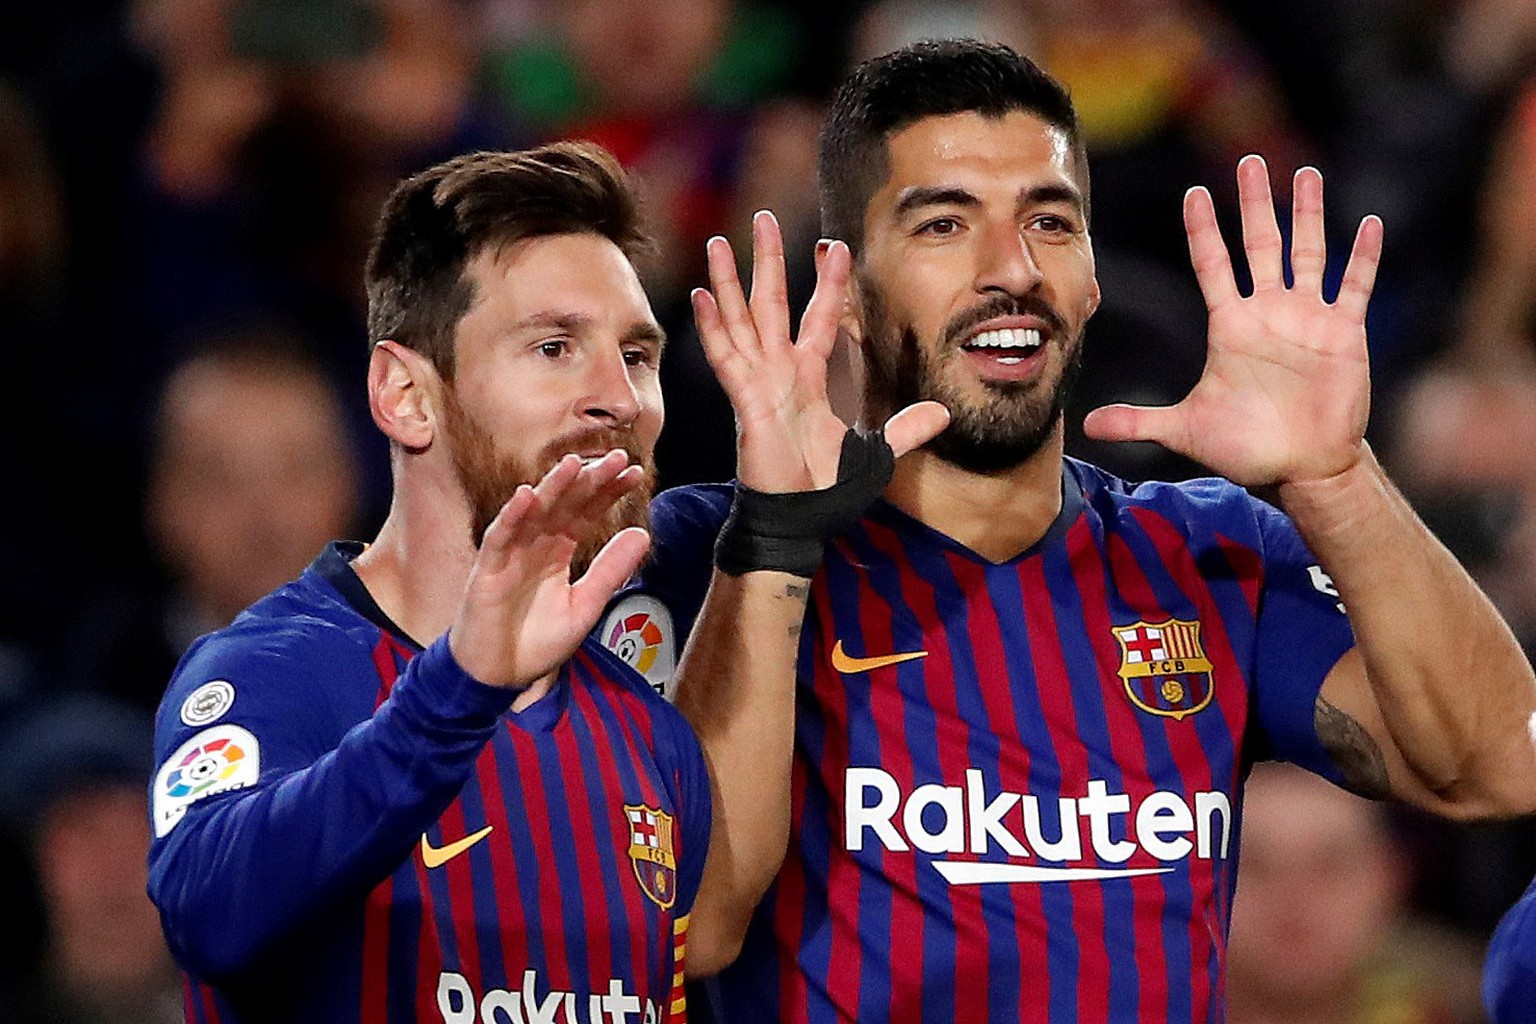 epa07280678 FC Barcelona's Luis Suarez (R) celebrates with teammate Lionel Messi (L) after scoring the 3-0 lead during the Spanish La Liga Primera Division soccer match between FC Barcelona and SD Eibar at Camp Nou stadium in Barcelona, Spain, 13 January 2019.  EPA/ALBERTO ESTEVEZ